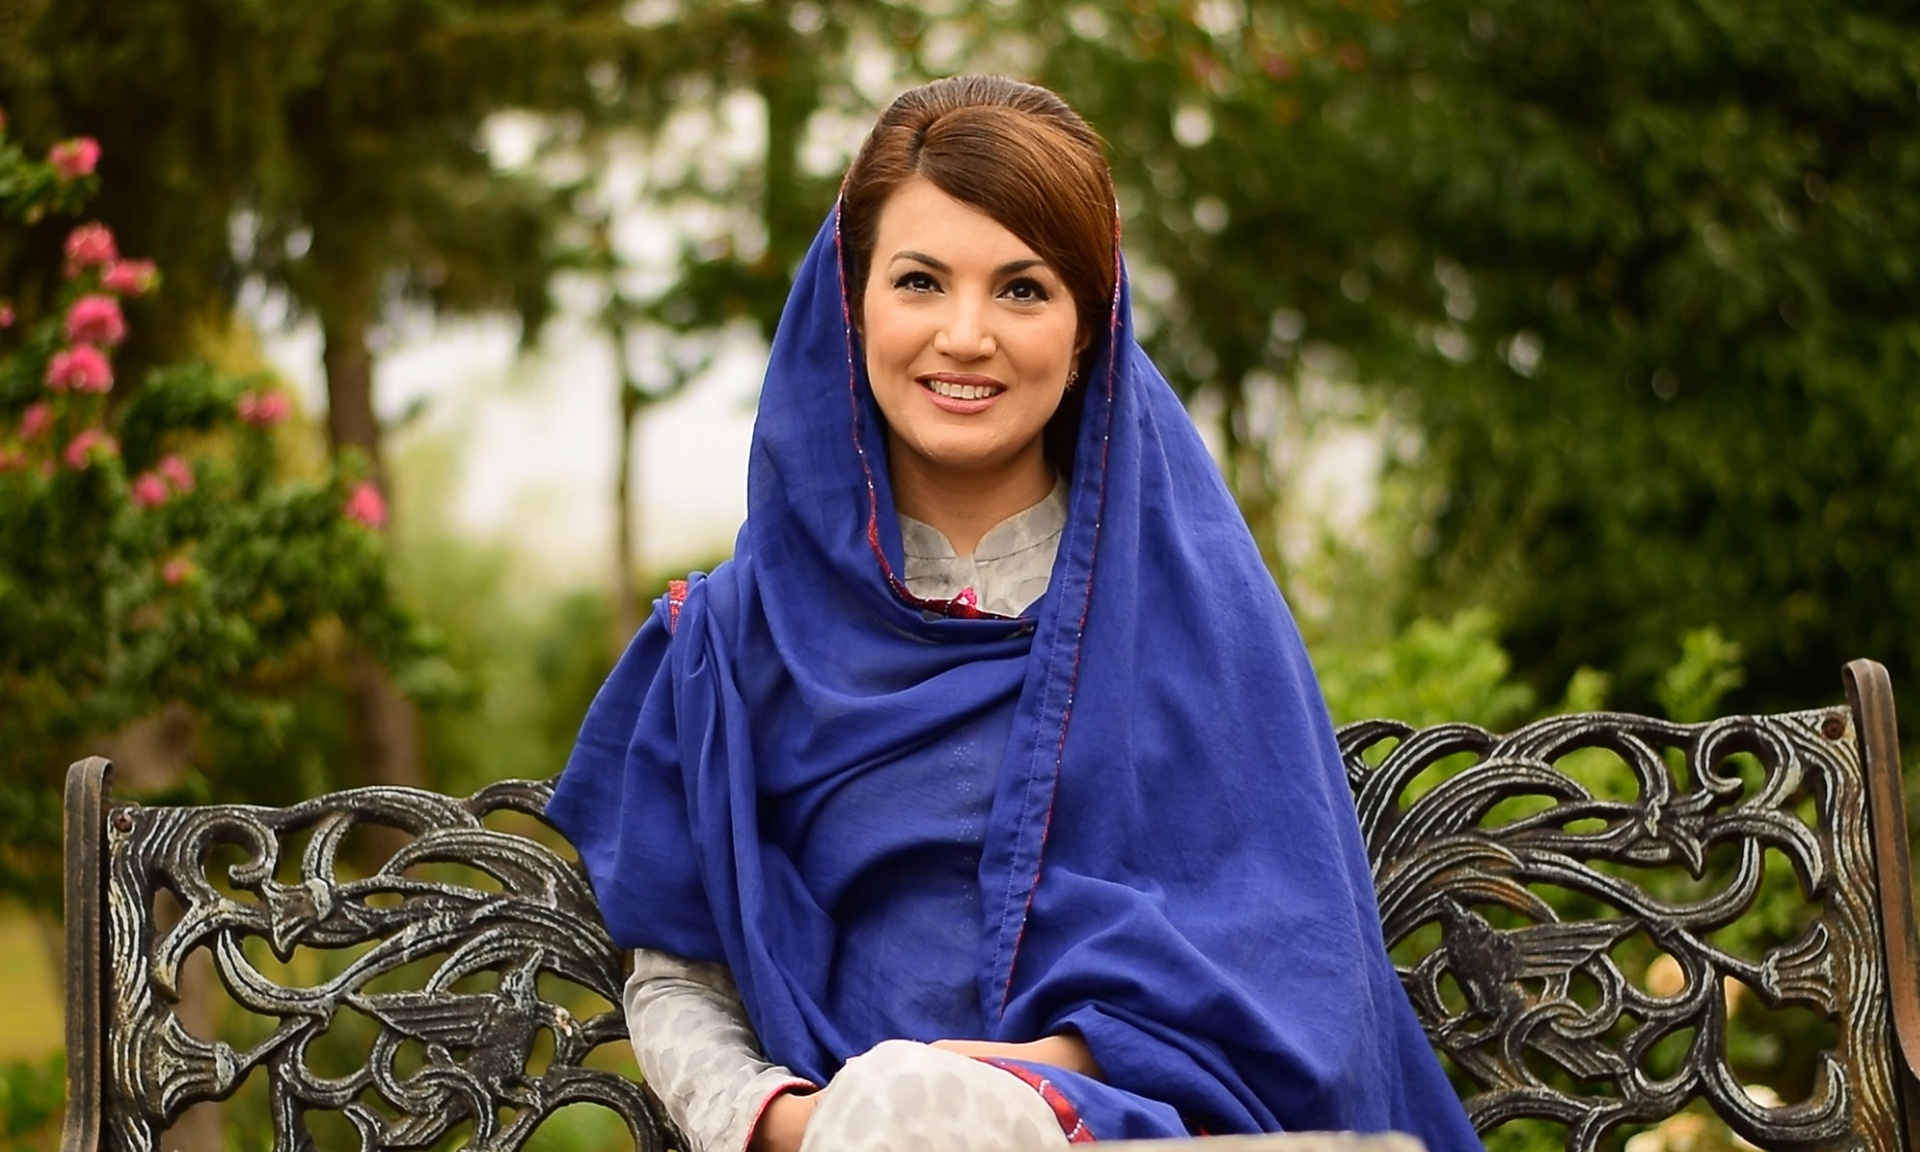 Reham leaves exhibition in London amid harsh questions